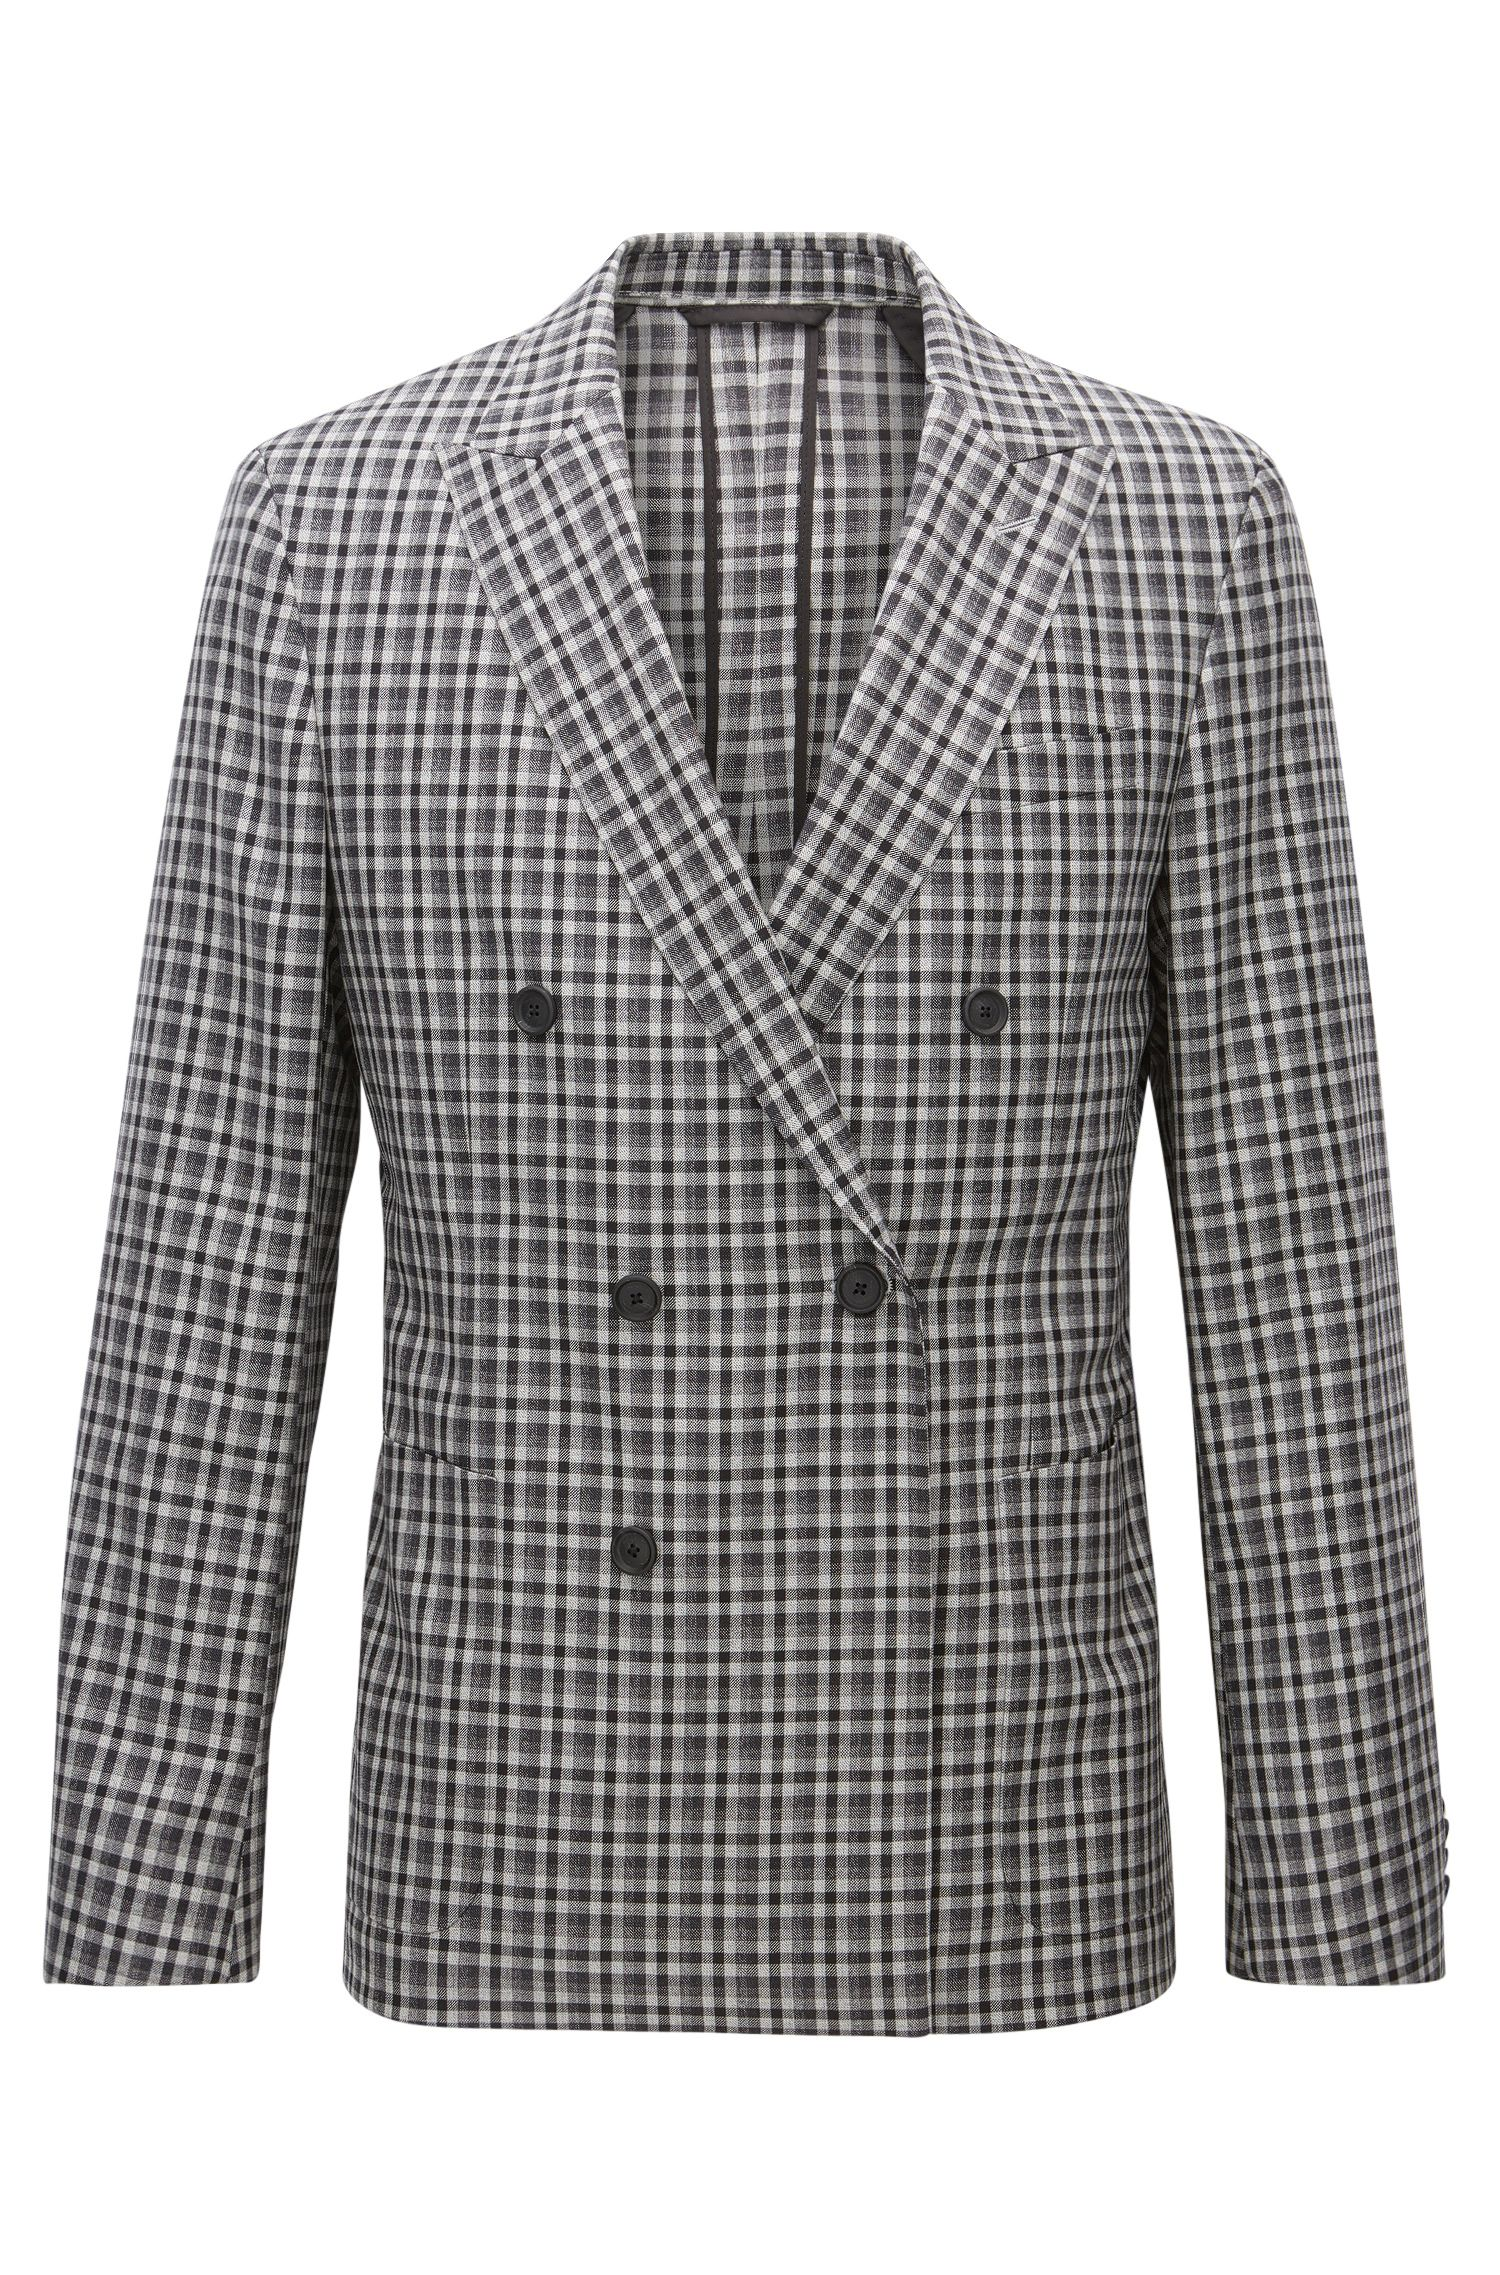 Checked Wool Double-Breasted Sport Coat, Slim Fit | Nayler J